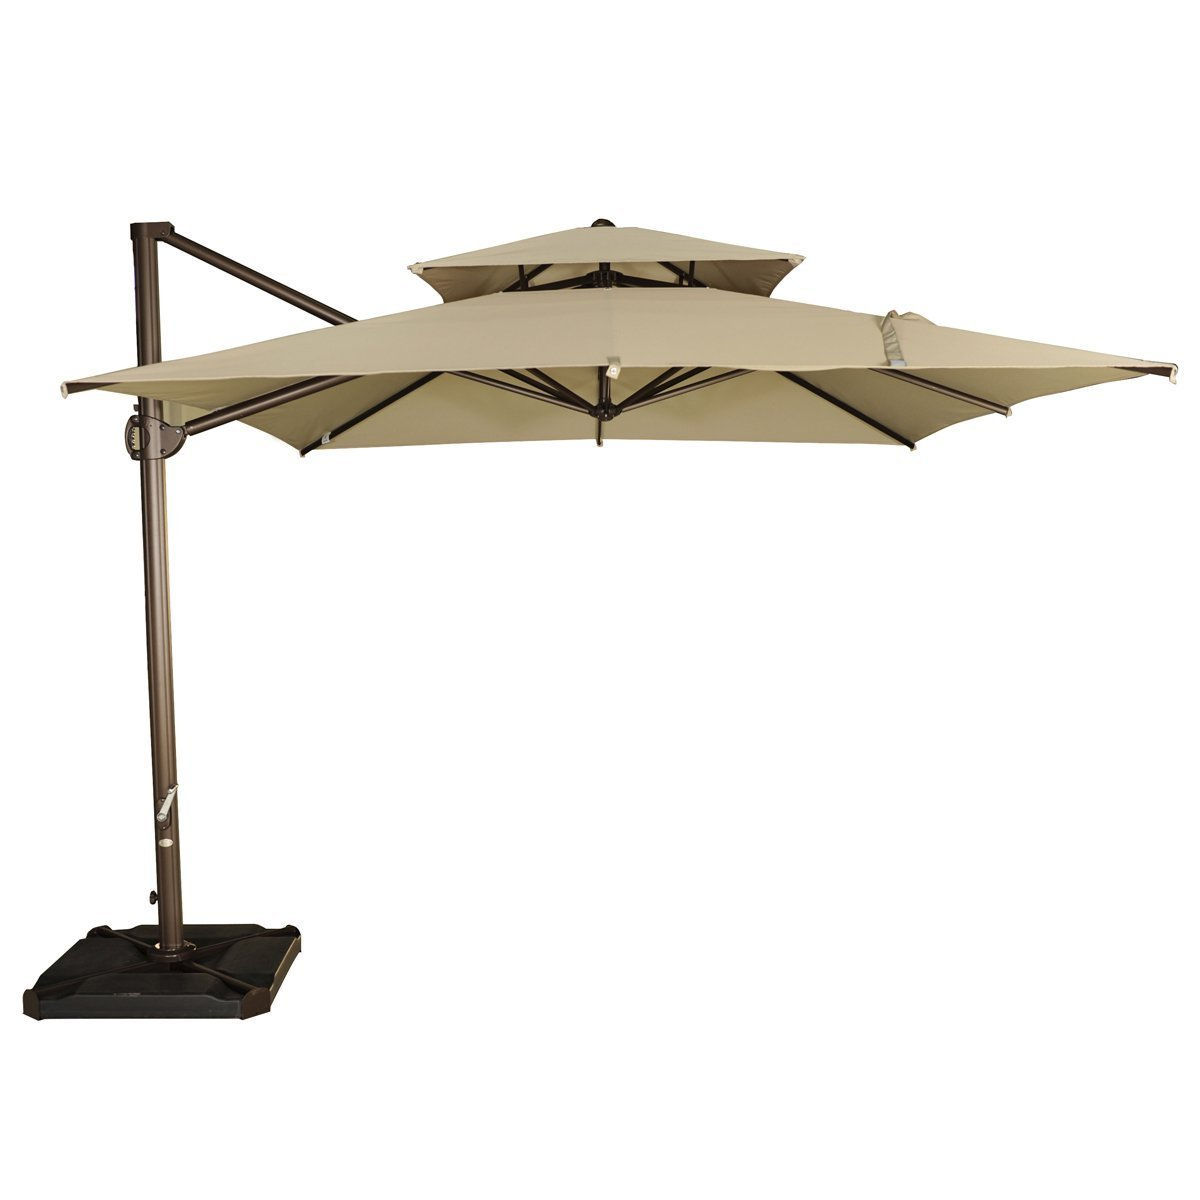 abba patio 99-ft square offset cantilever hanging patio umbrella 9 Ft Umbrella Base